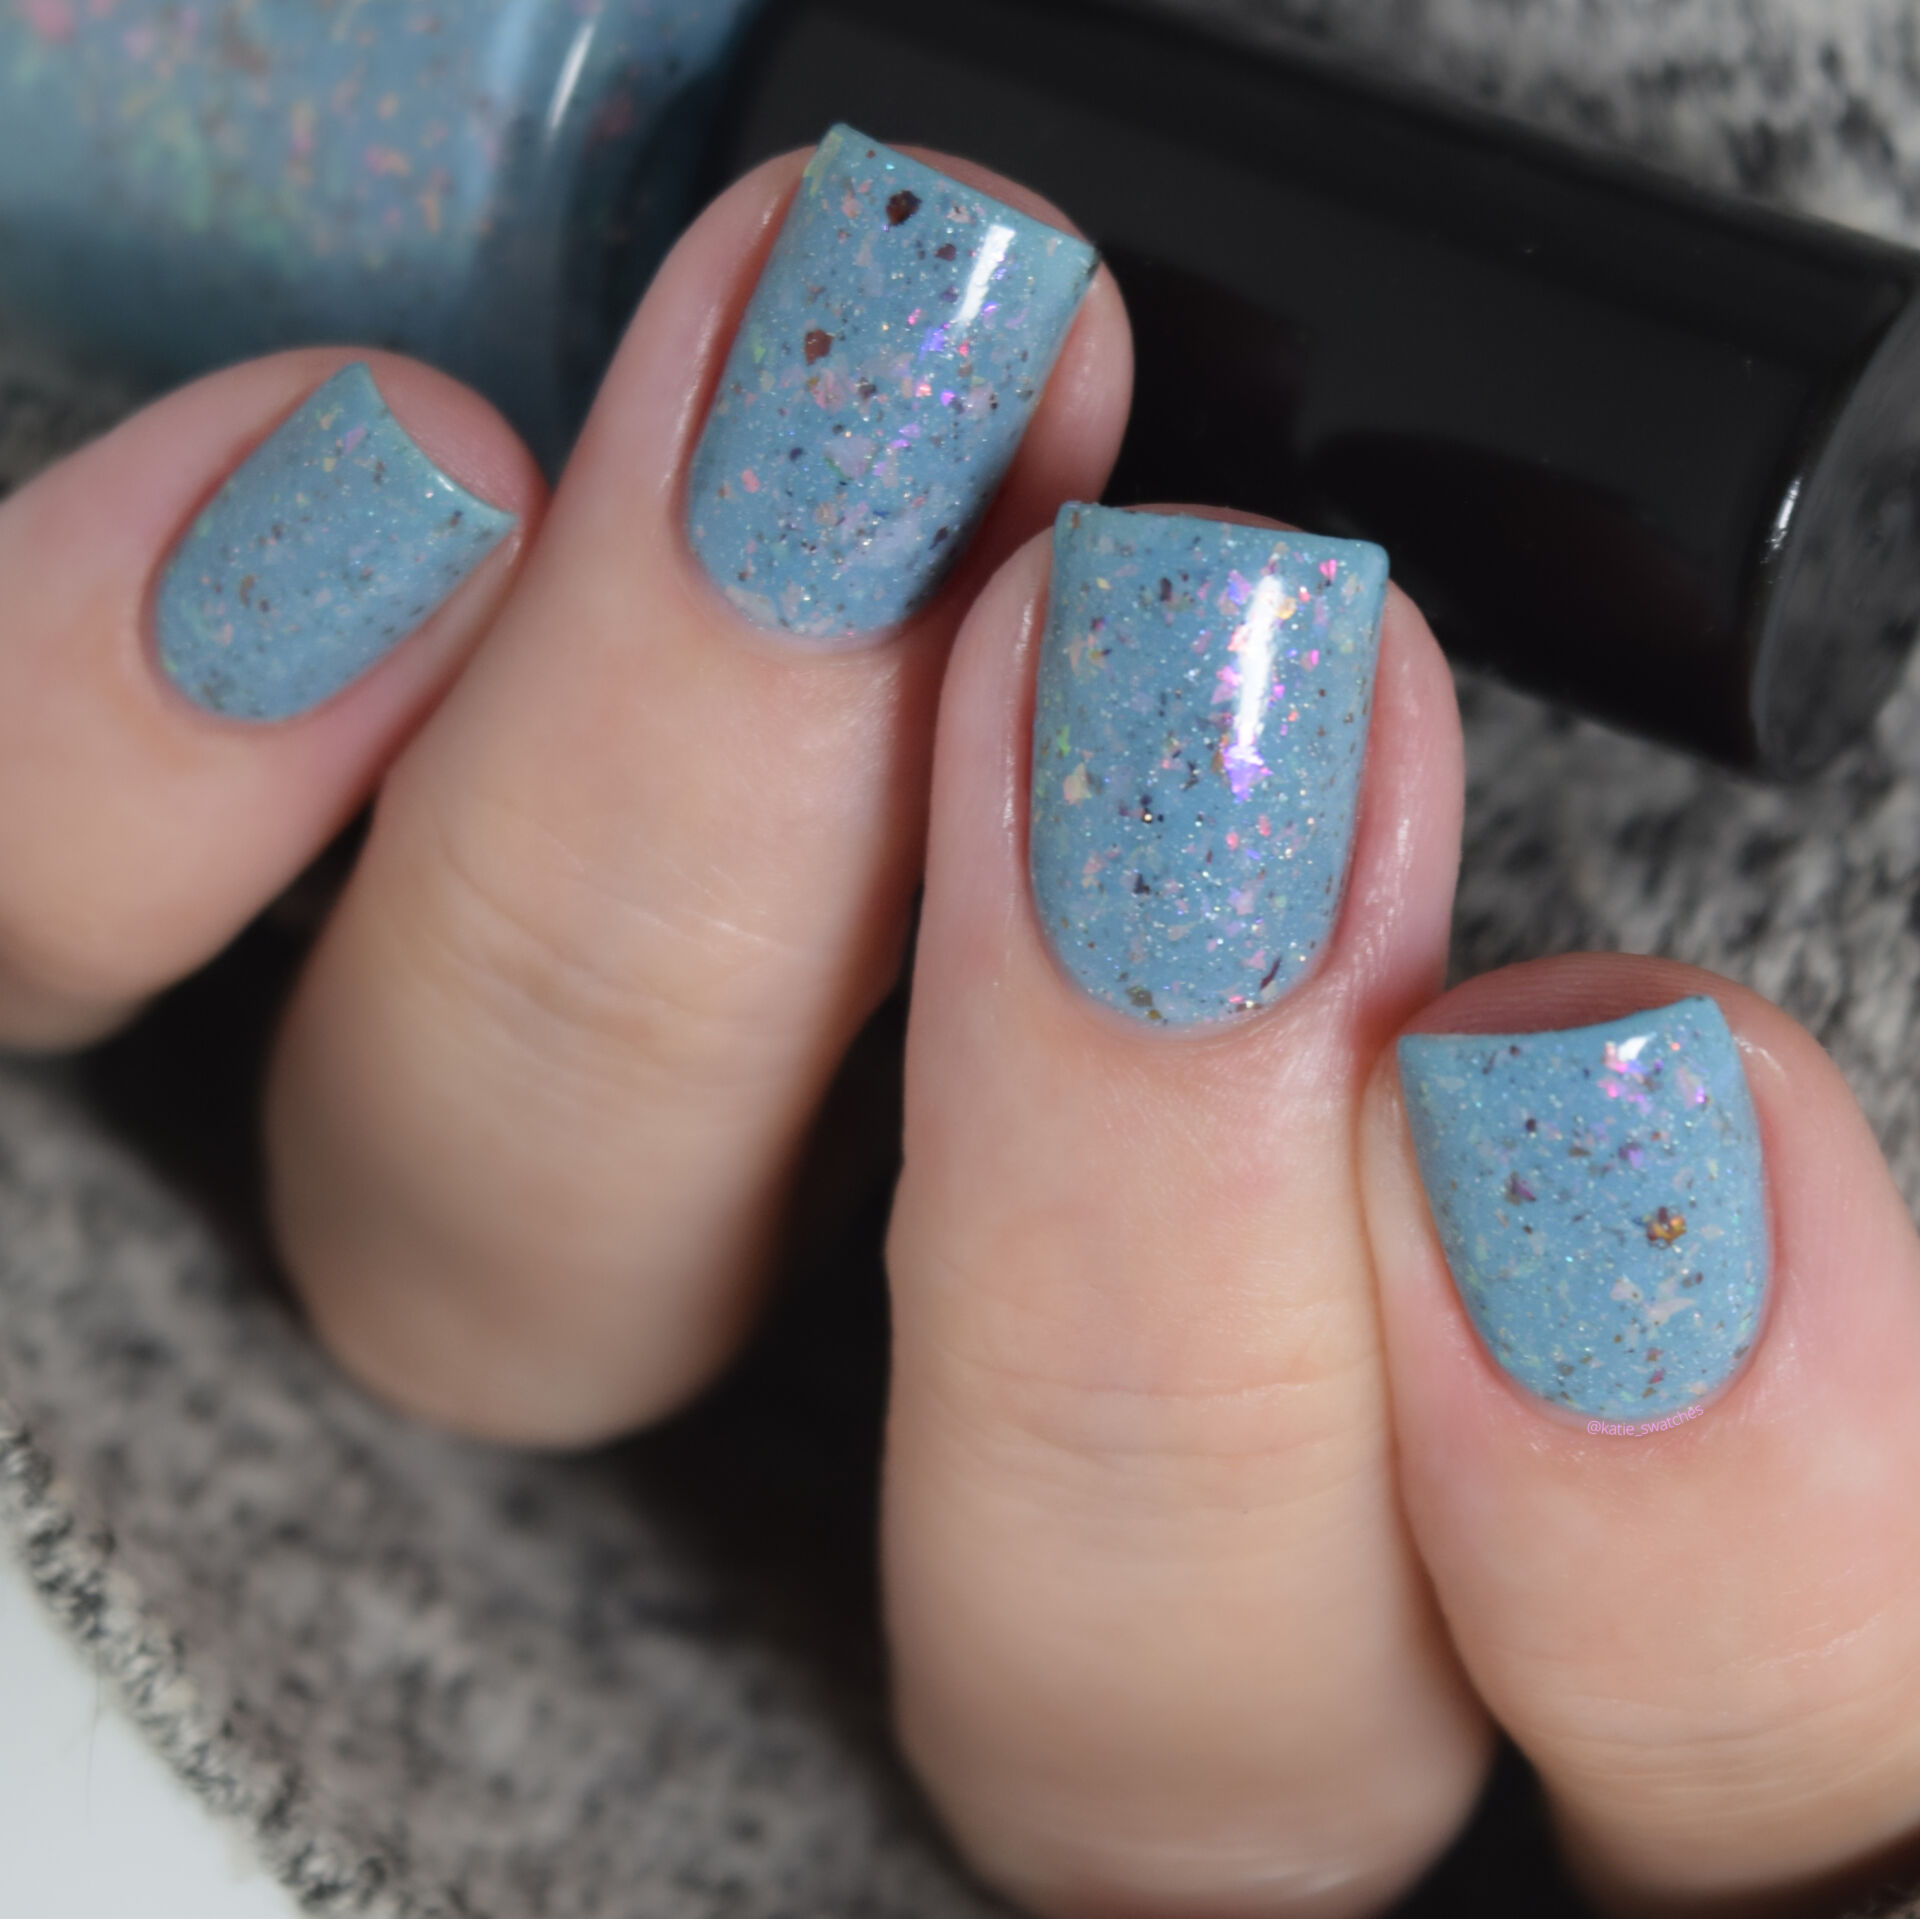 Penelope Luz - Crazy Rick nail polish swatch Polish Pickup PPU August 2020 - baby blue with colourful iridescent flakies and a tiny touch of multichrome flakes